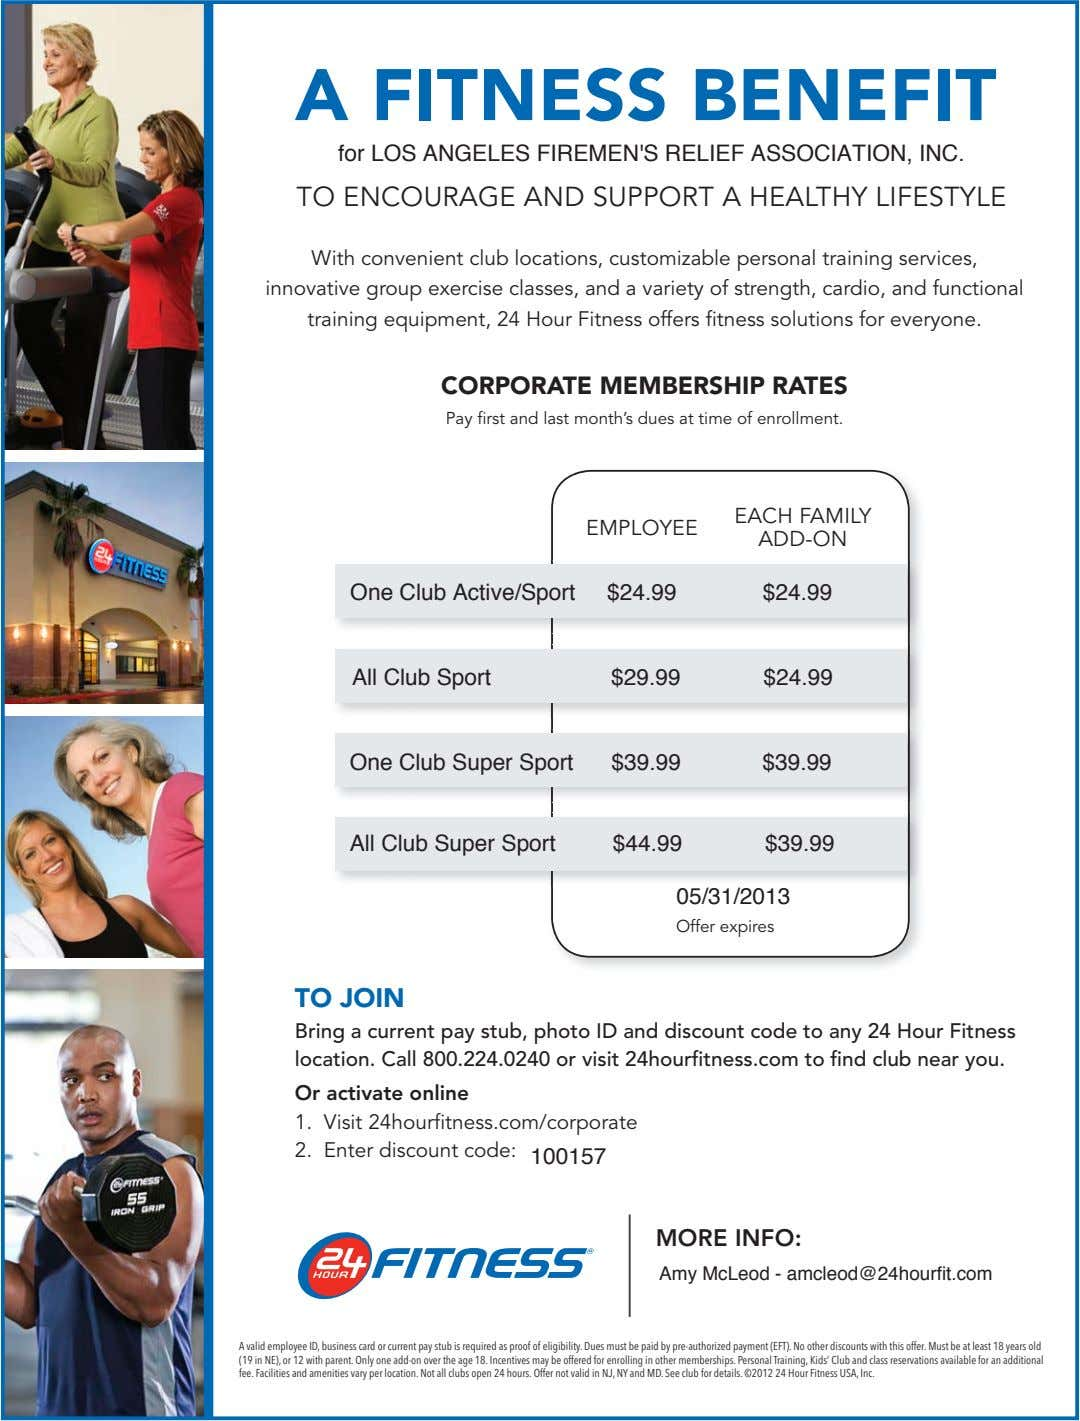 A FITNESS BENEFIT for LOS ANGELES FIREMEN'S RELIEF ASSOCIATION, INC. TO ENCOURAGE AND SUPPORT A